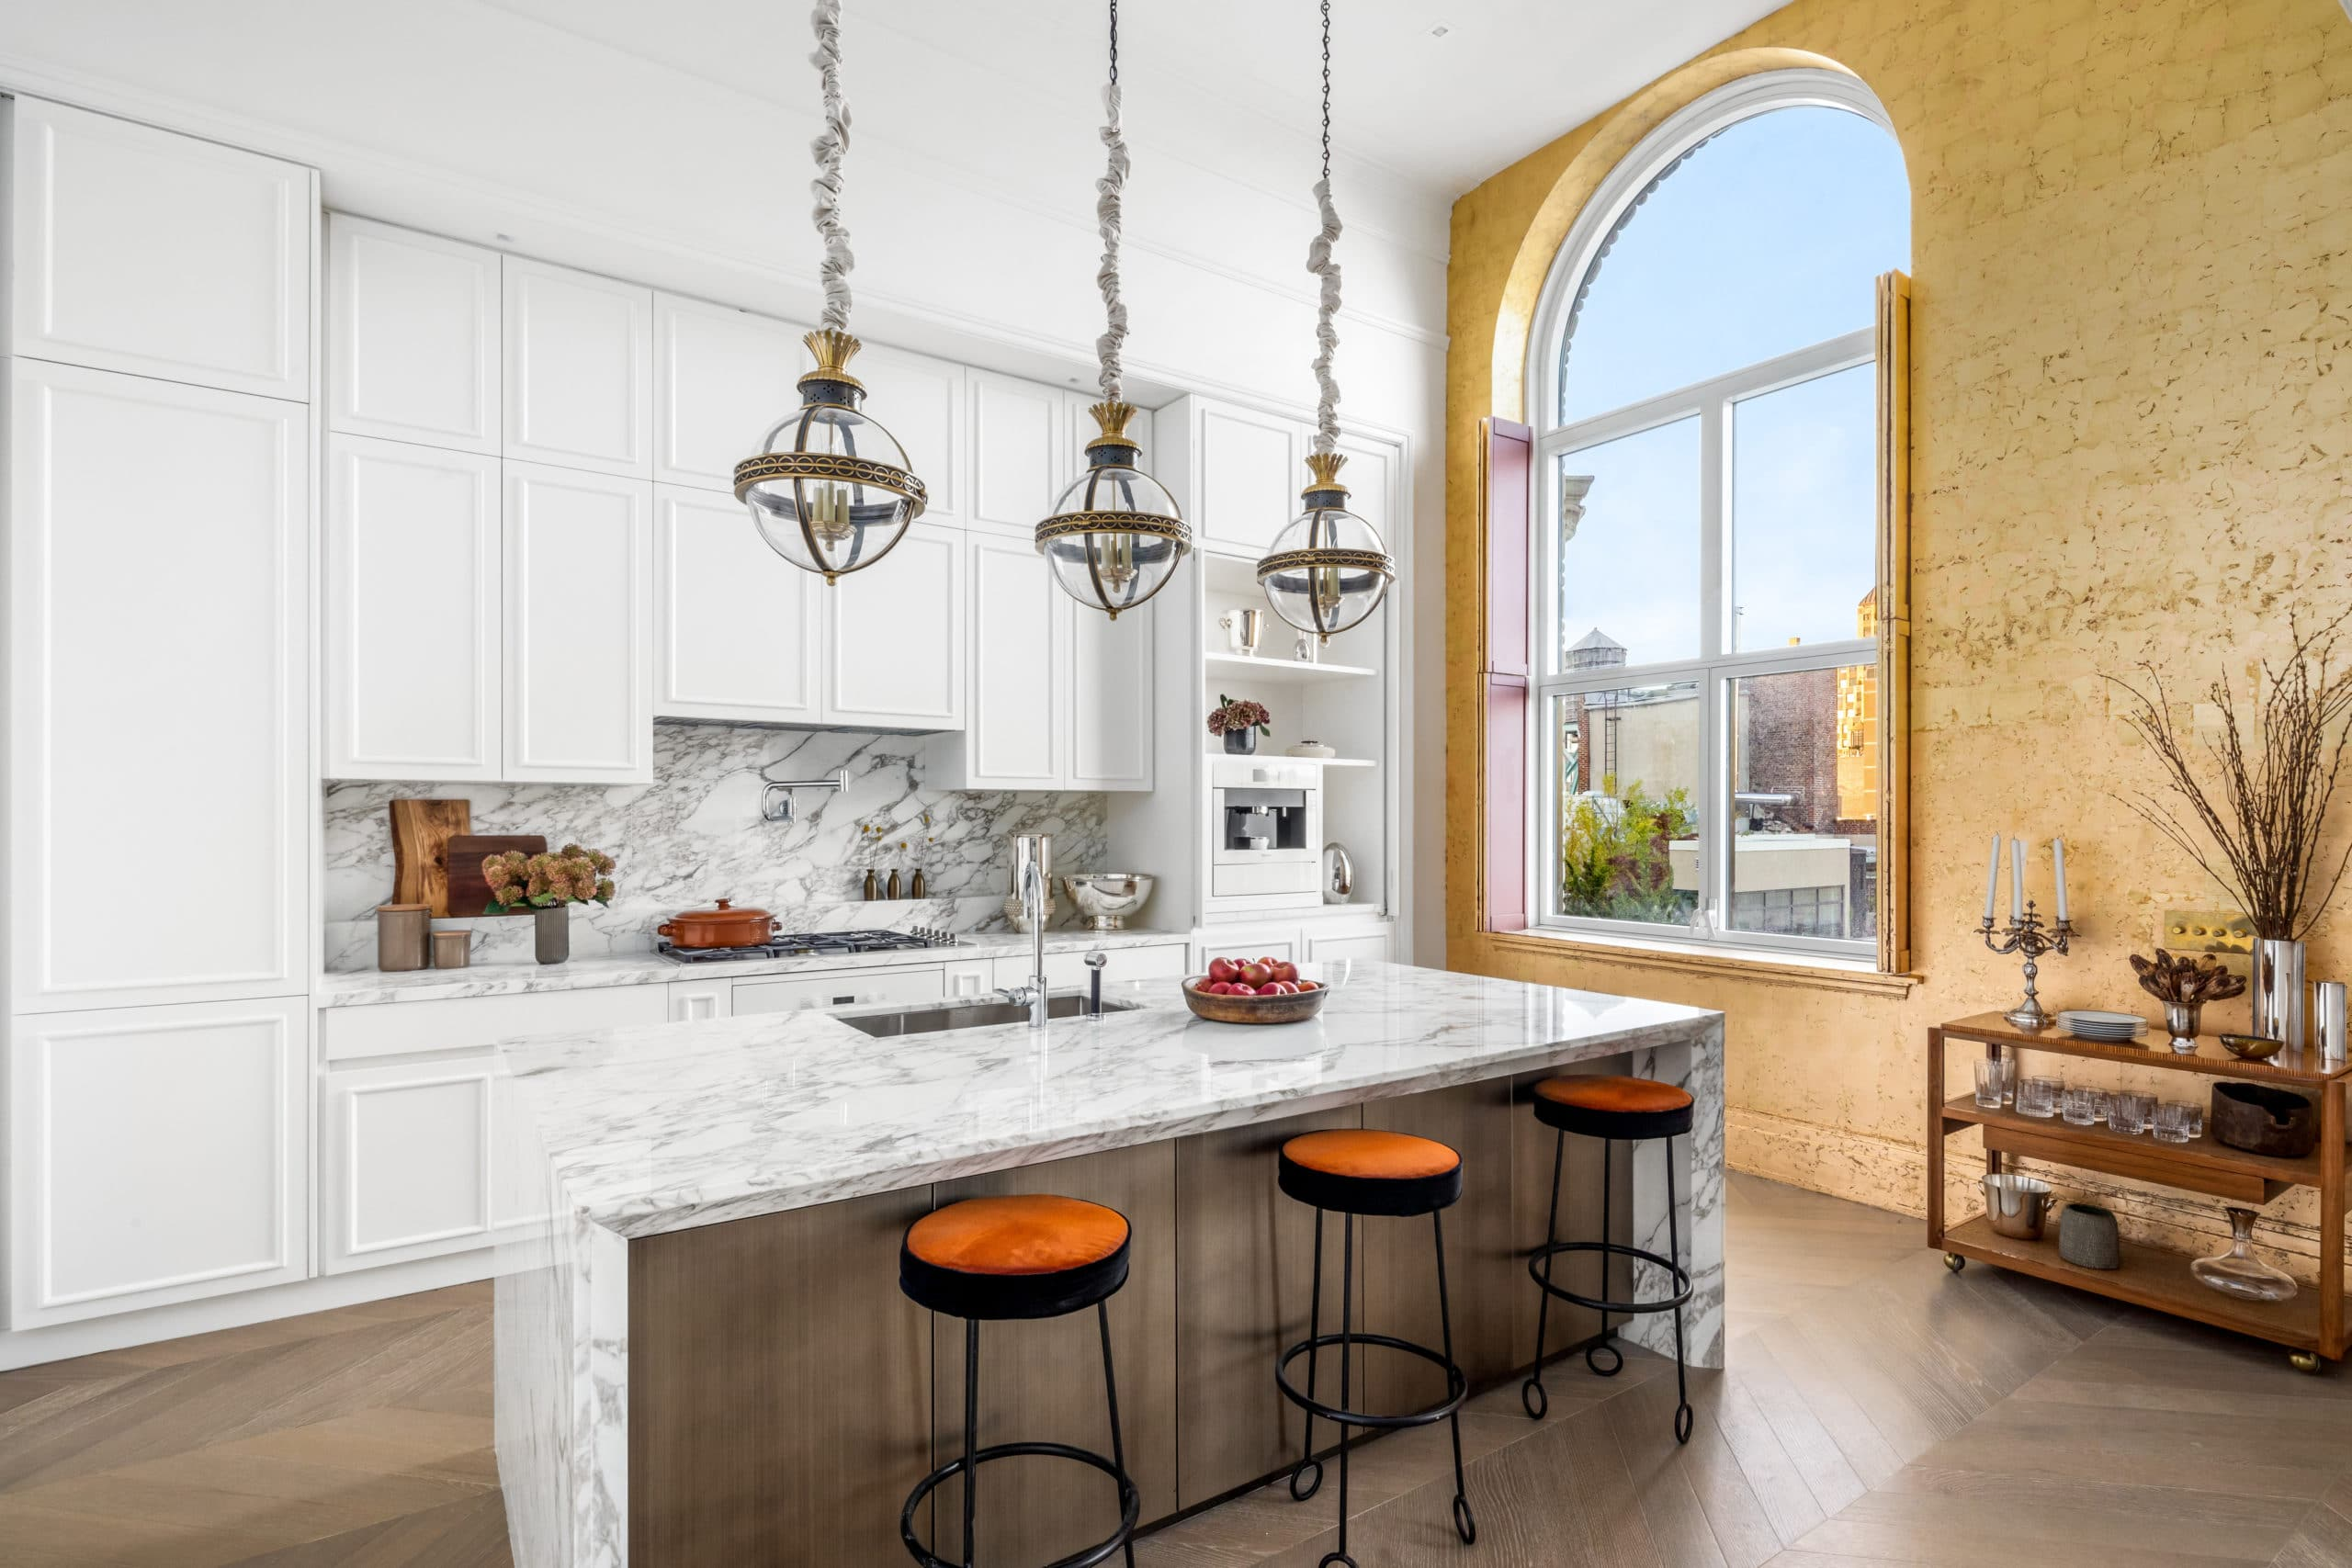 Interior of a kitchen in 108 Leonard with white walls accented with a yellow wall and a window overlooking New York City.